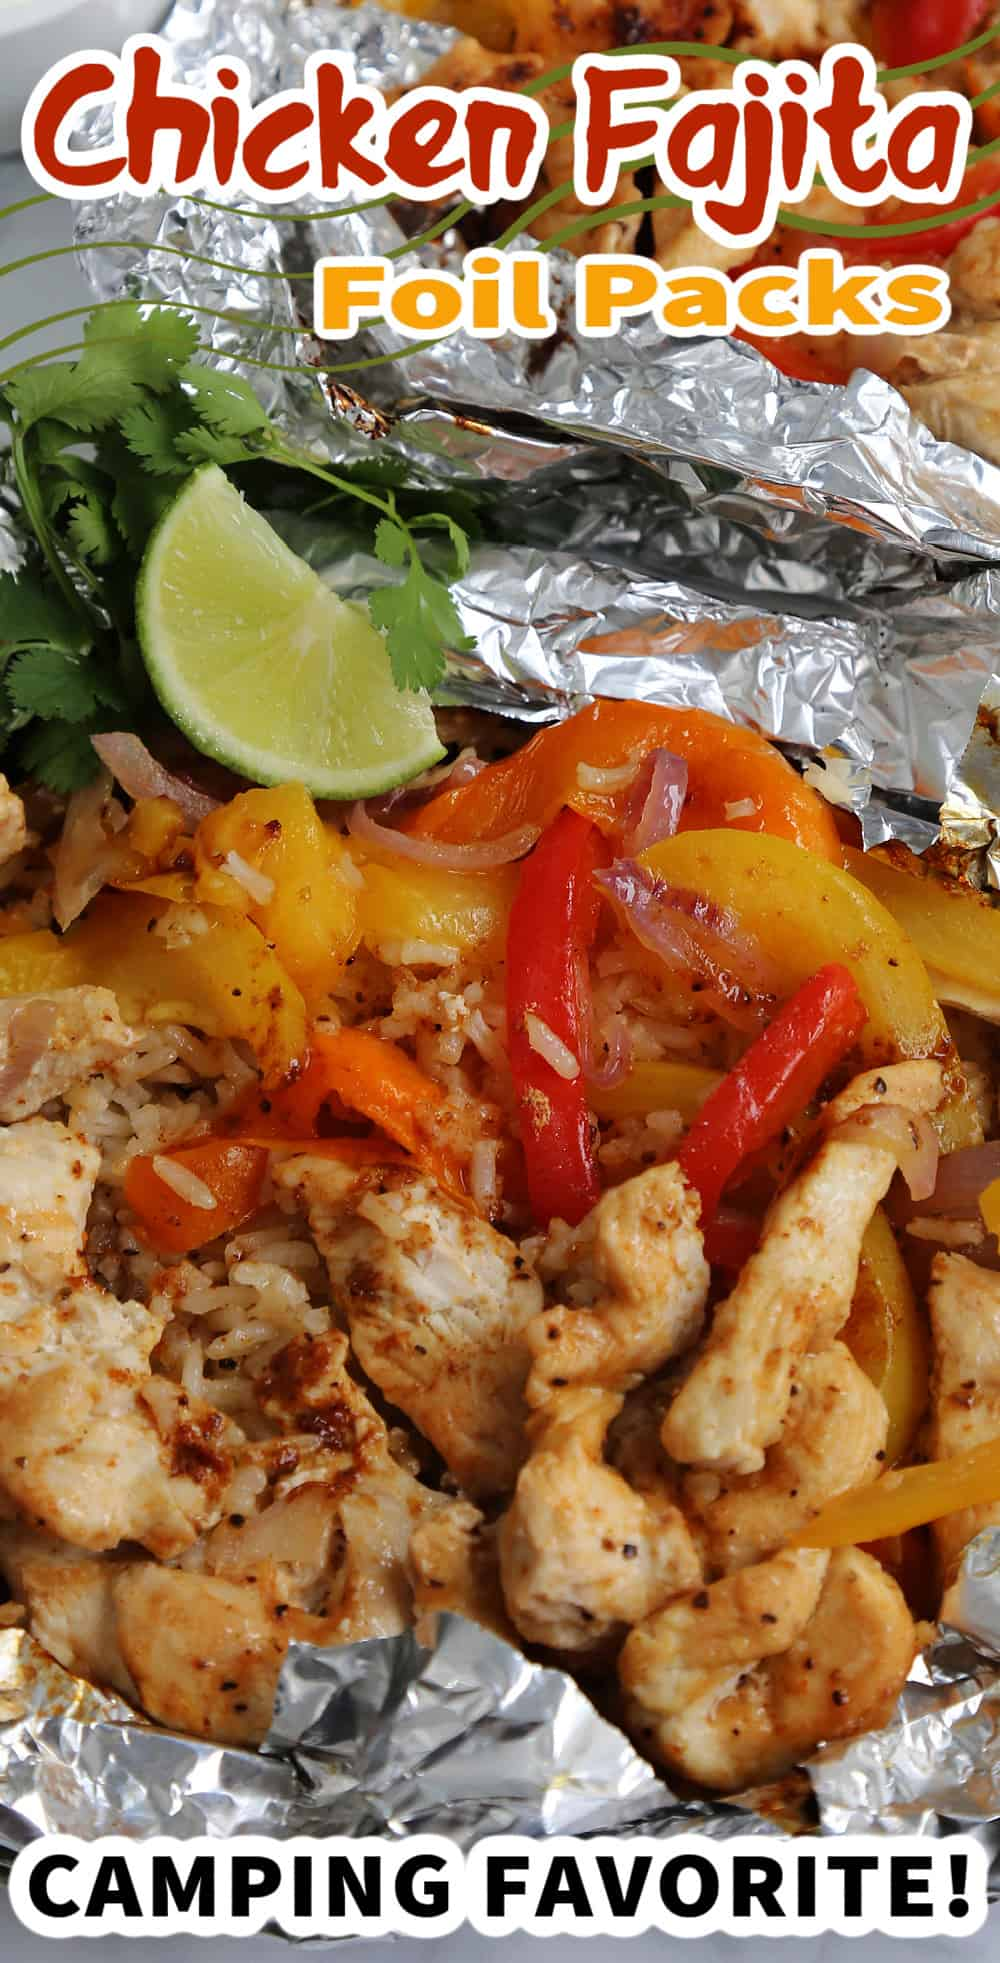 Chicken Fajita Foil Packets with text overlay